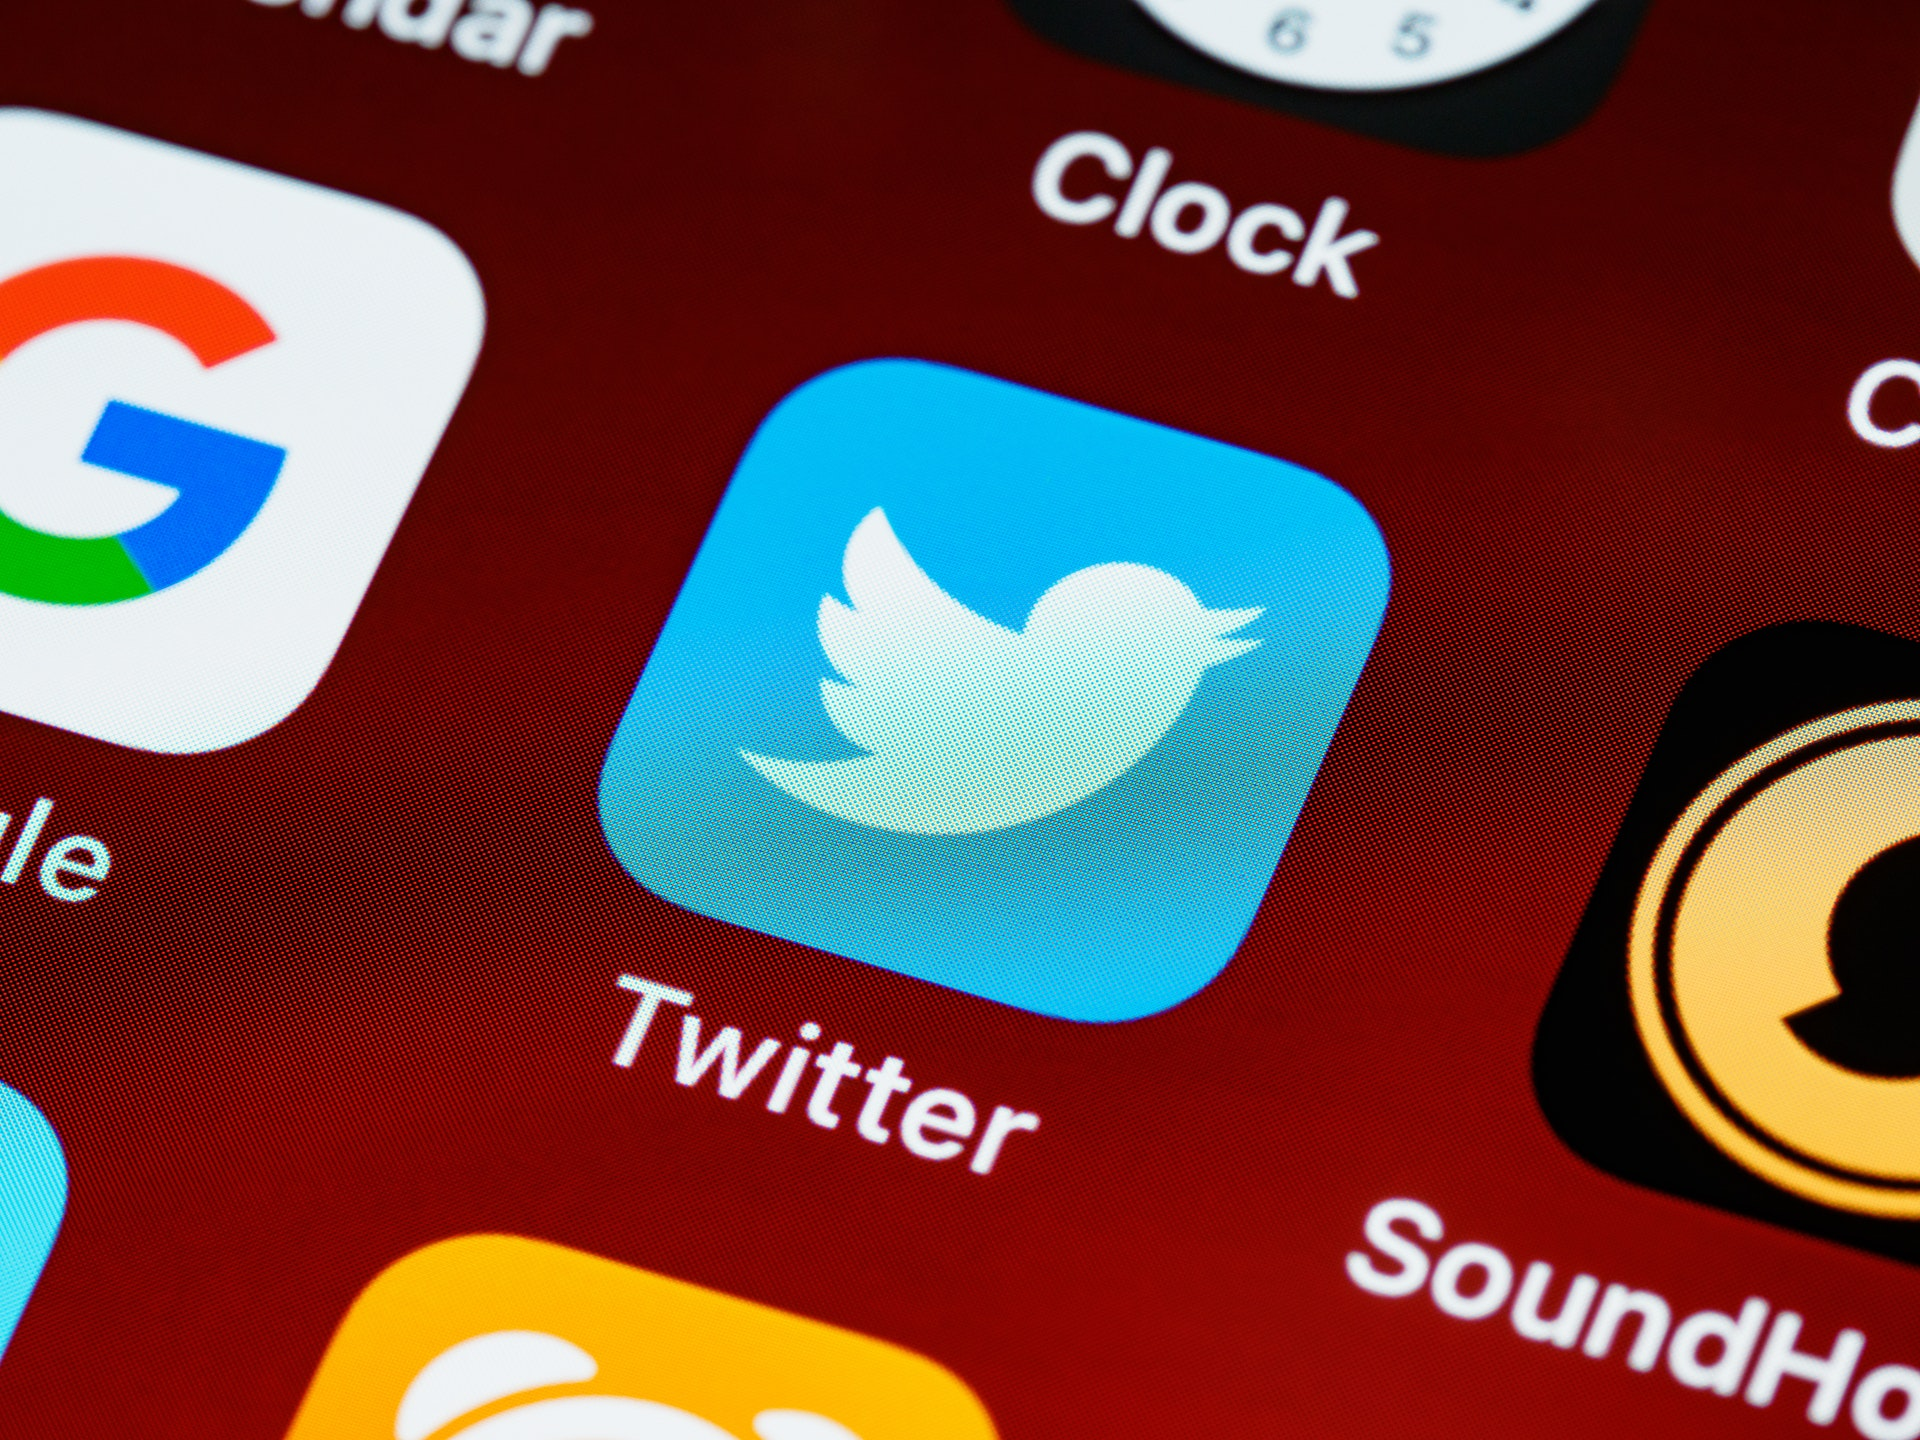 Sell Your Services or Products Using Twitter